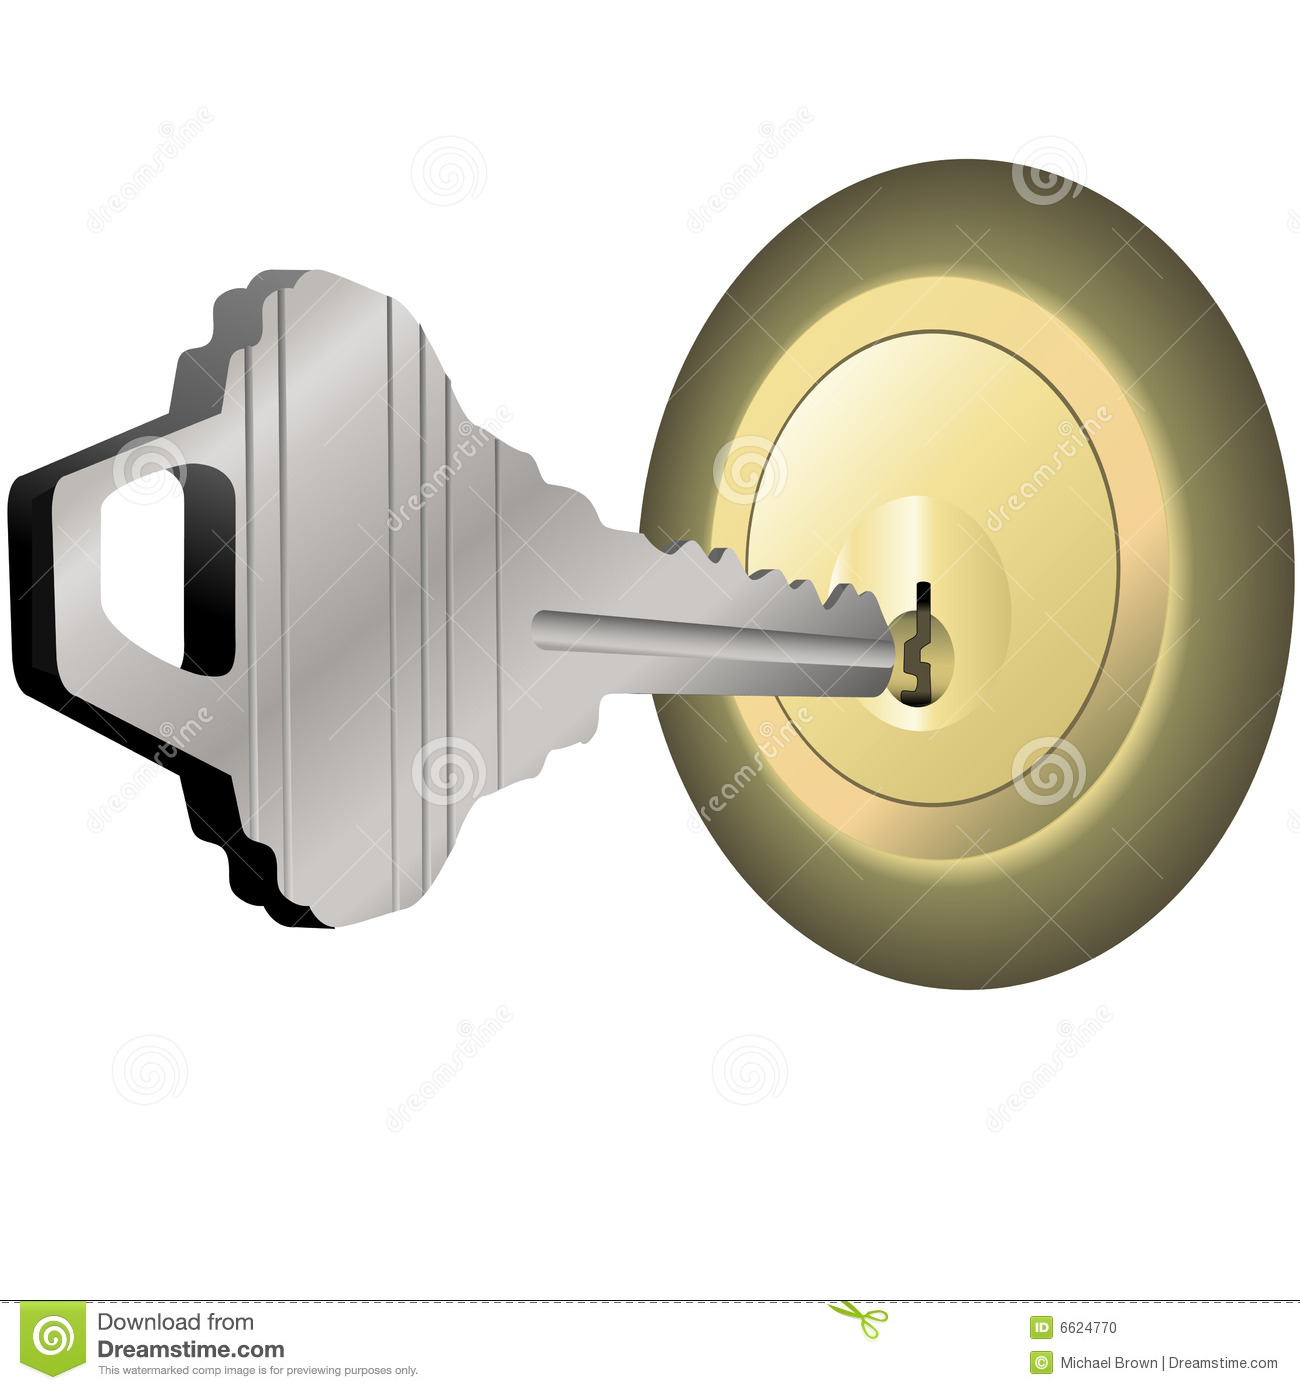 House Key To Unlock Brass Lock For Home Door Stock Photo.